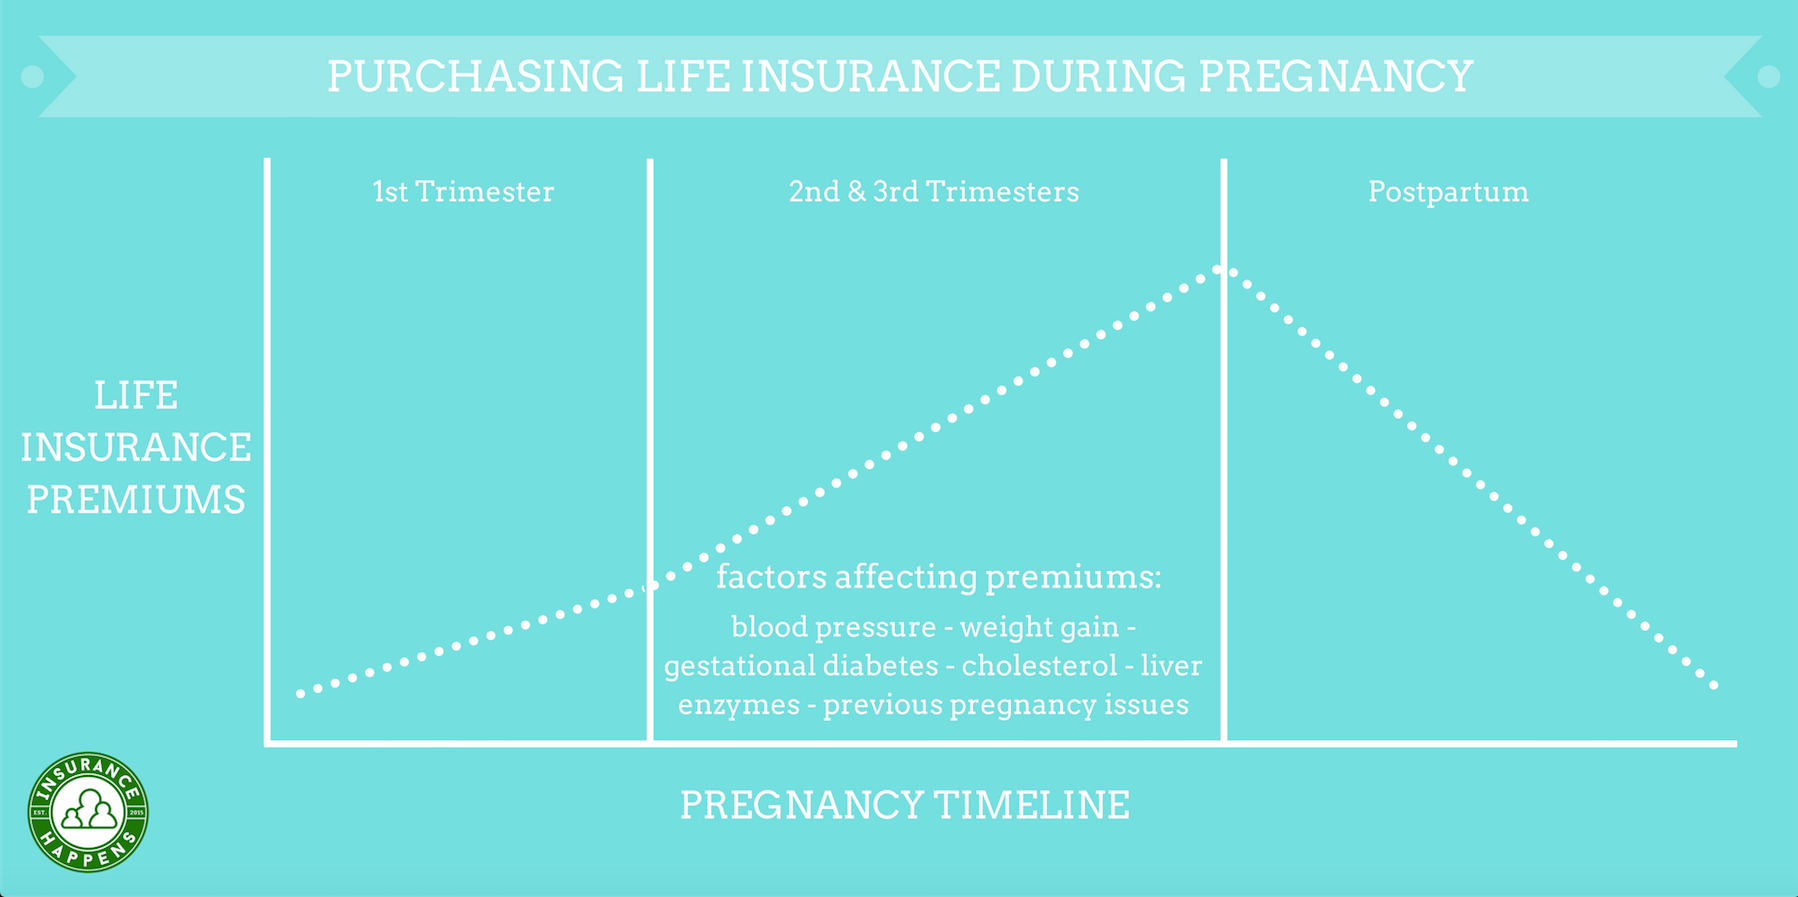 life insurance during pregnancy info graphic